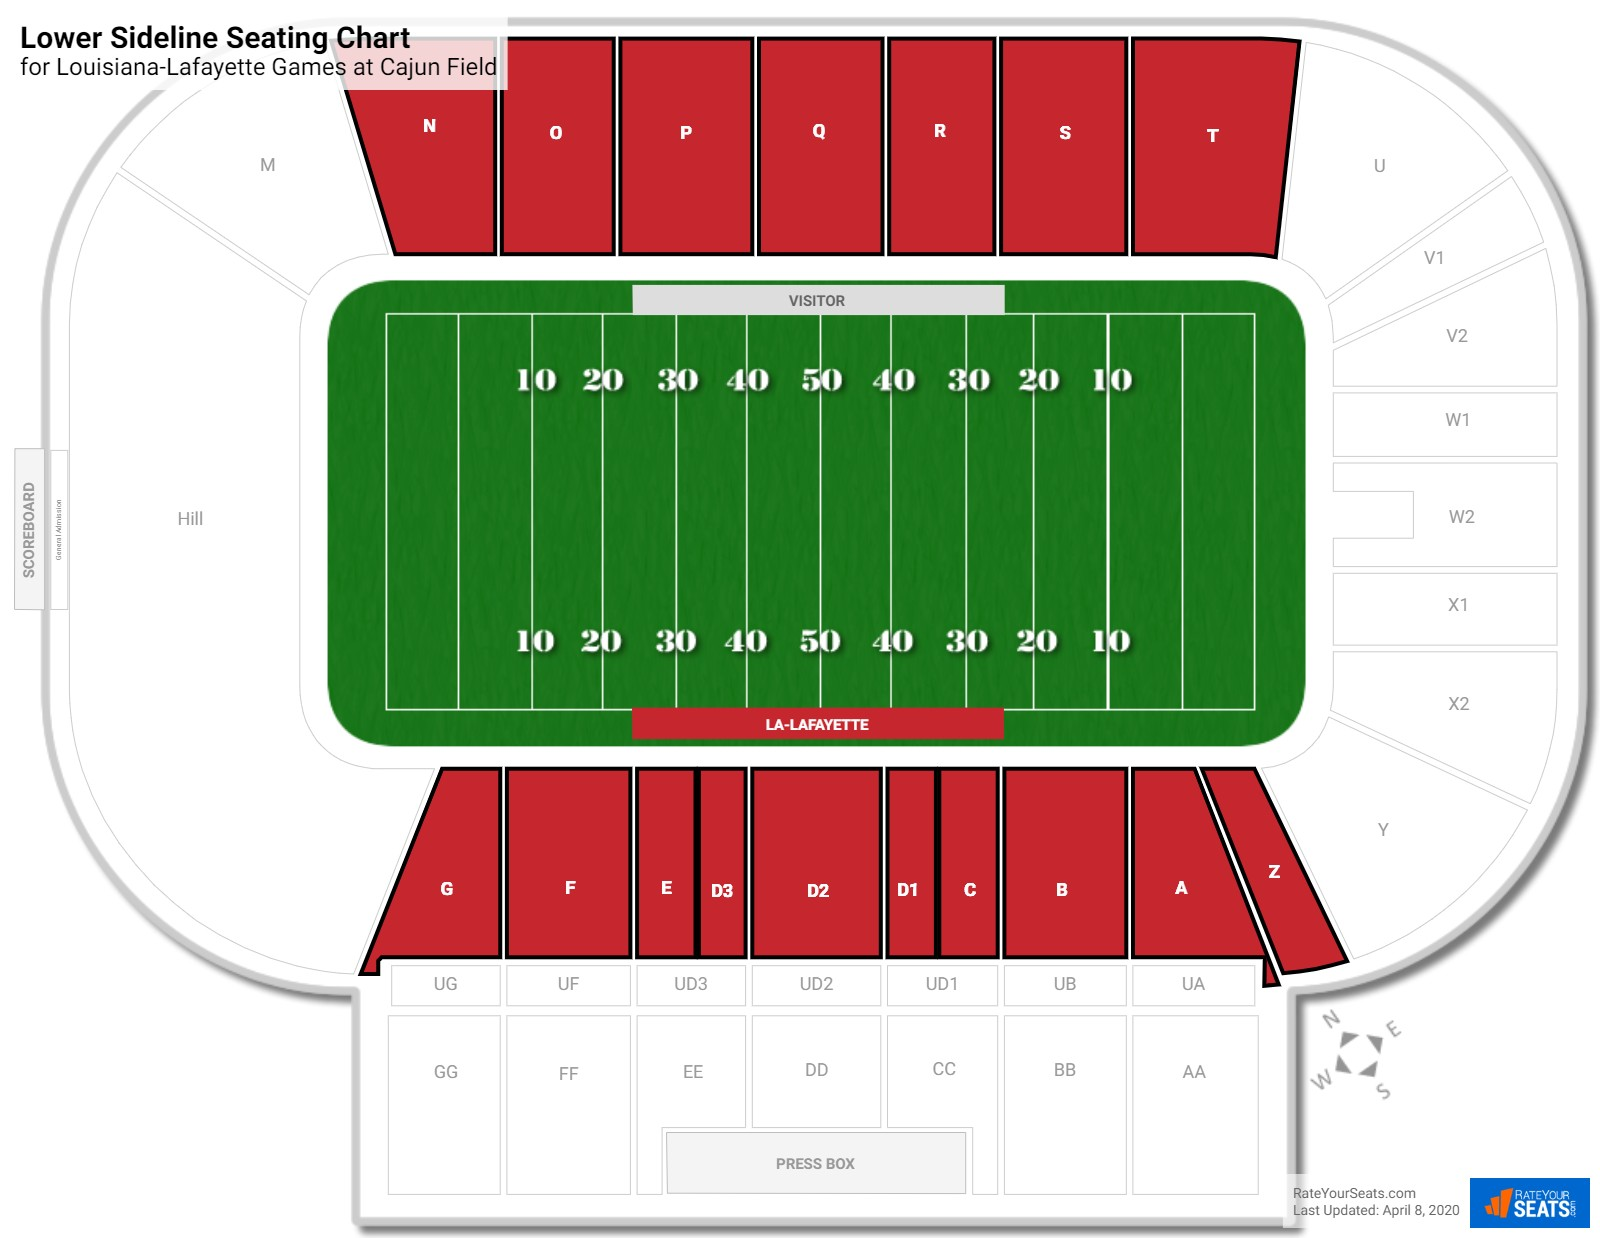 Cajun Field Lower Sideline seating chart